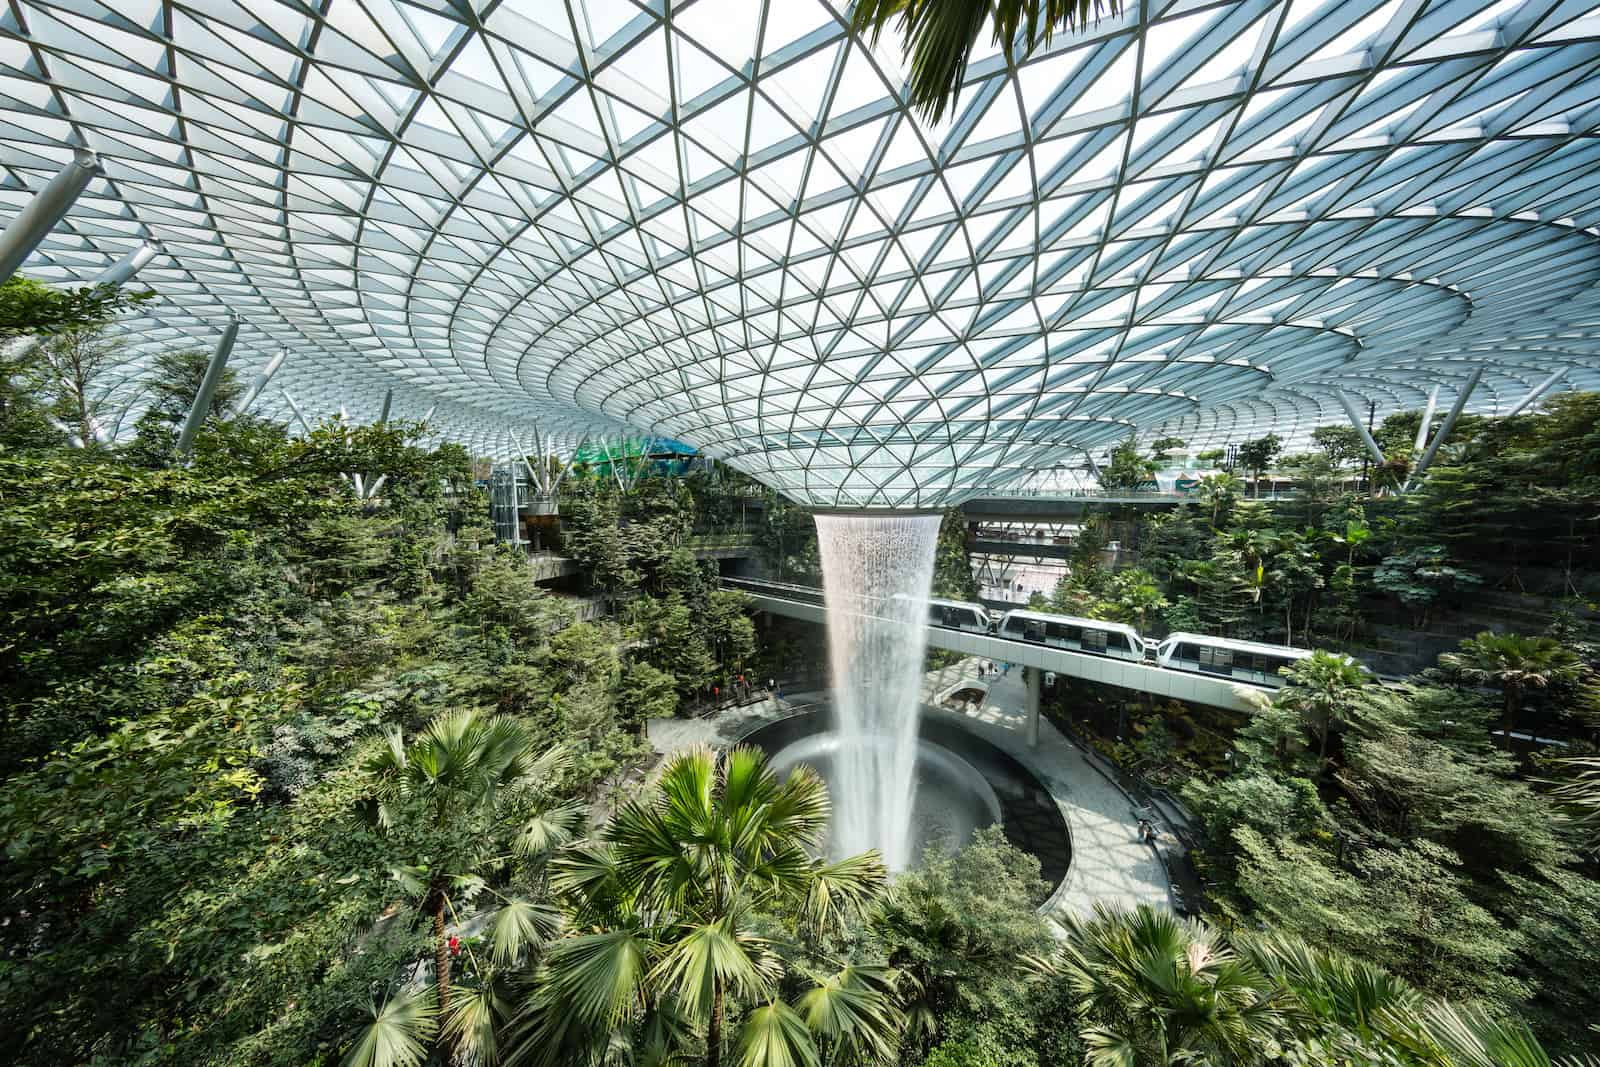 HSCB Rain Vortex and Shiseido Forest Valley Jewel Changi Airport